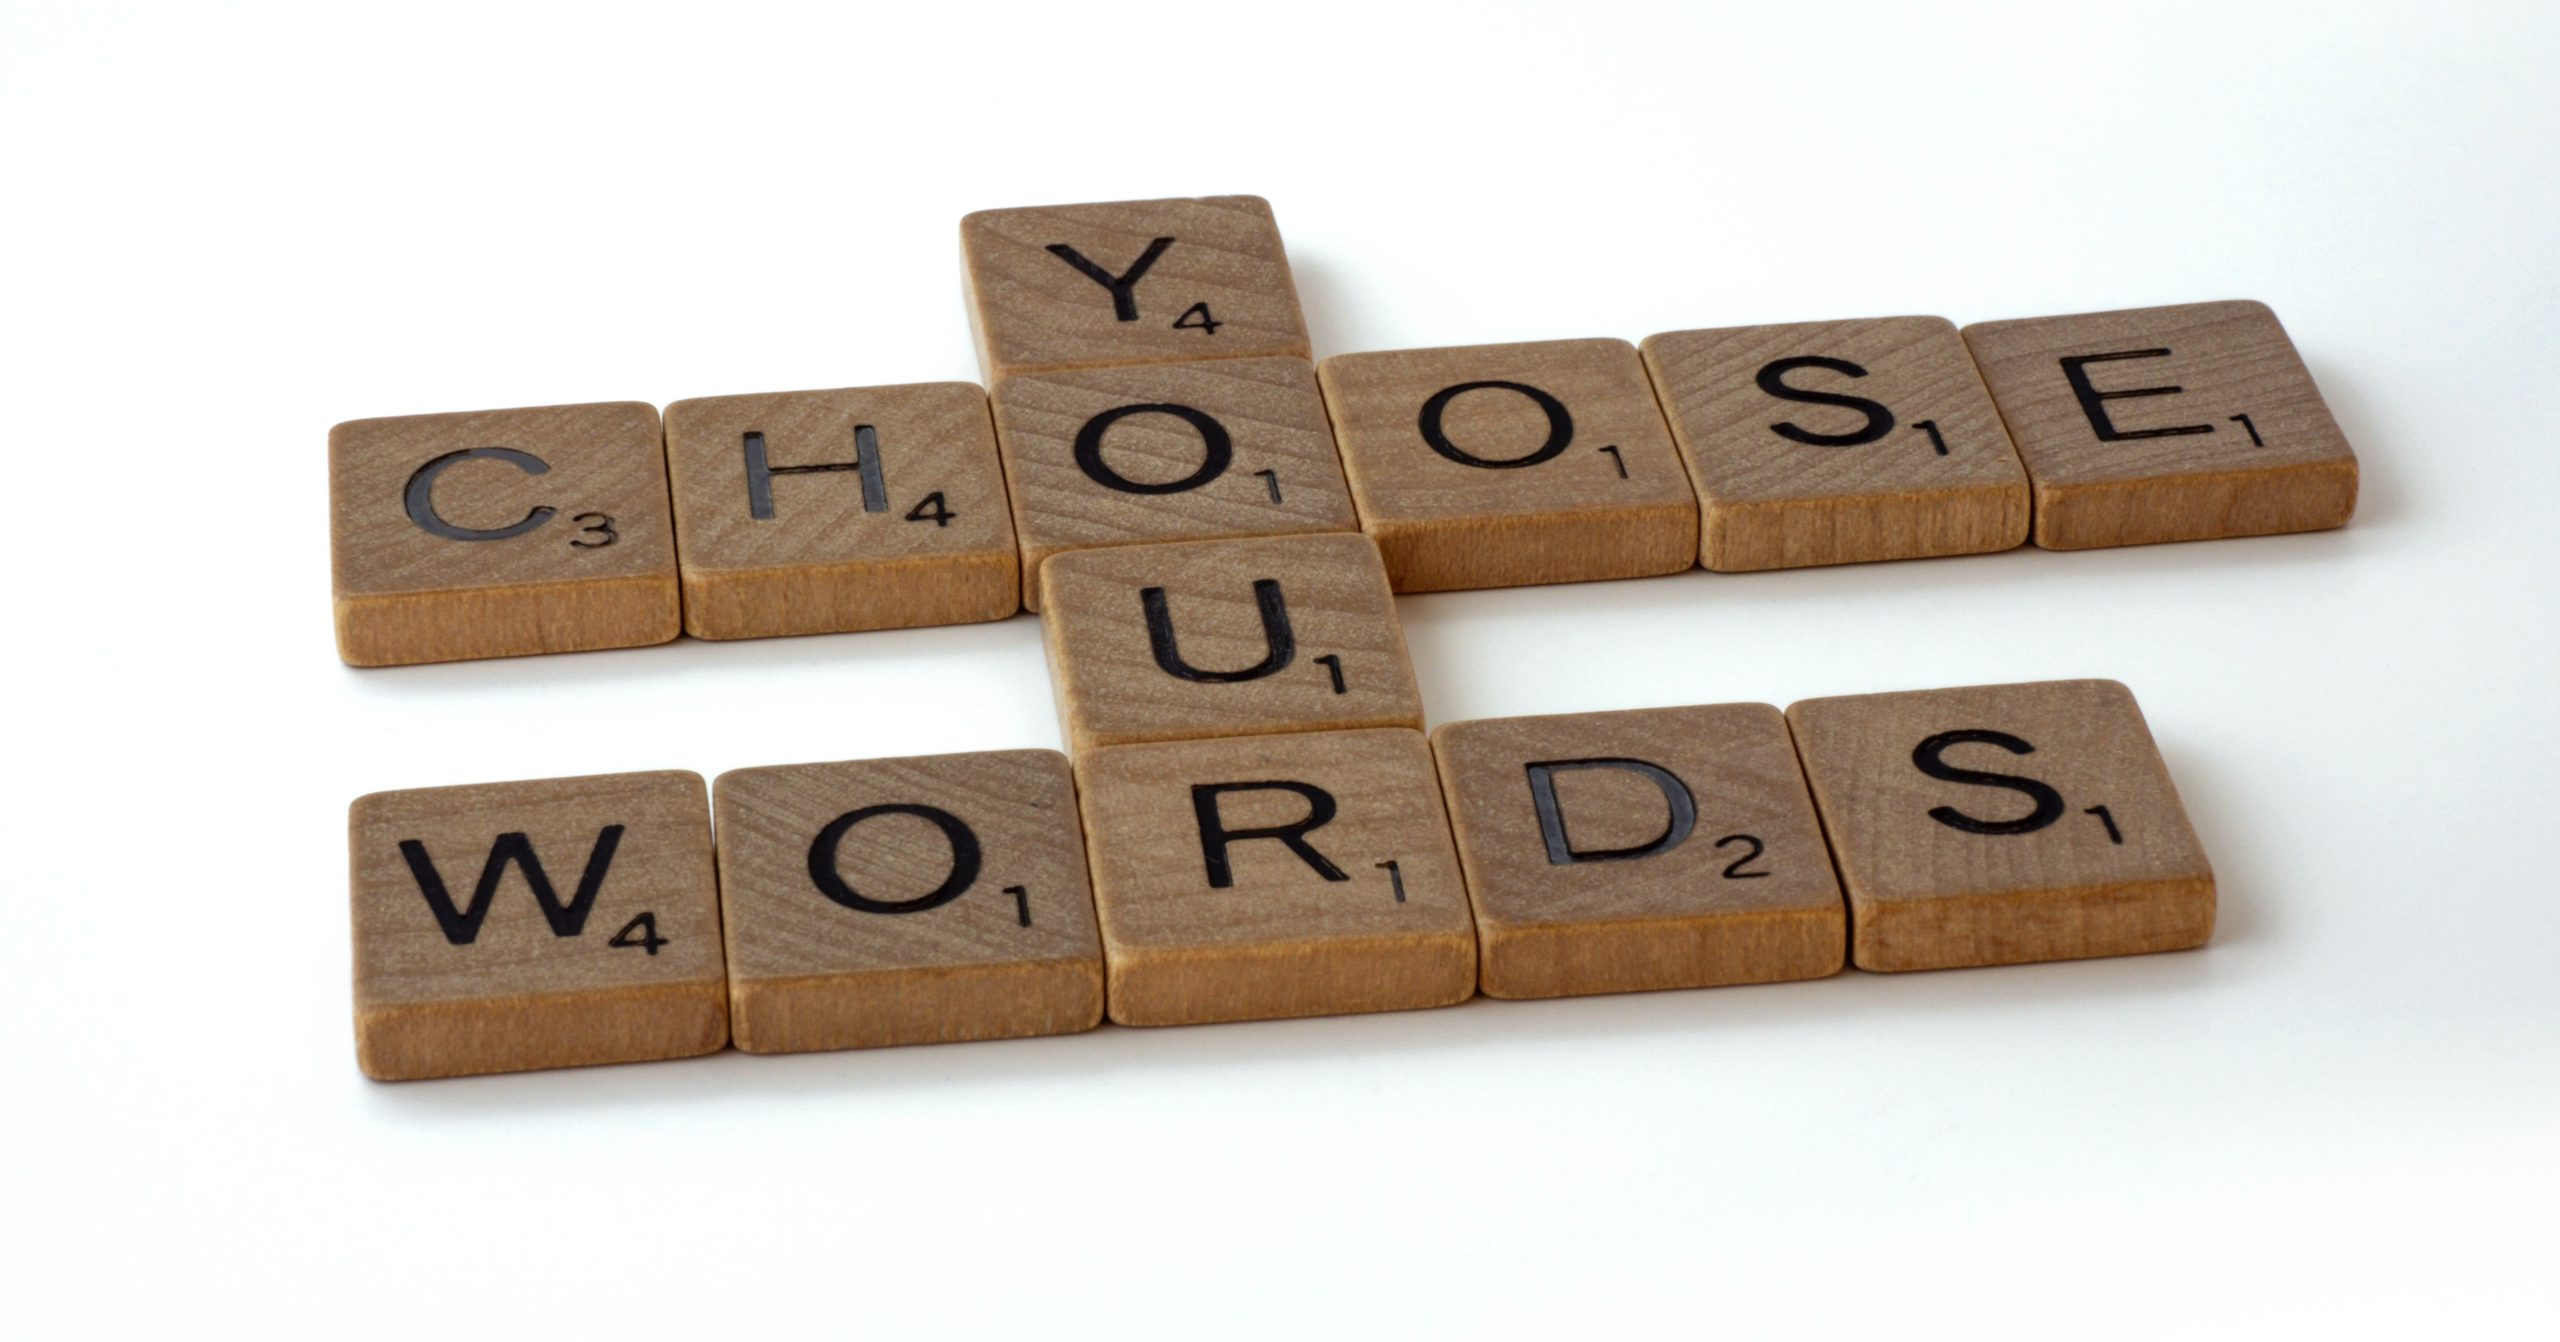 Image of scrabble tiles forming the words Choose Your Words